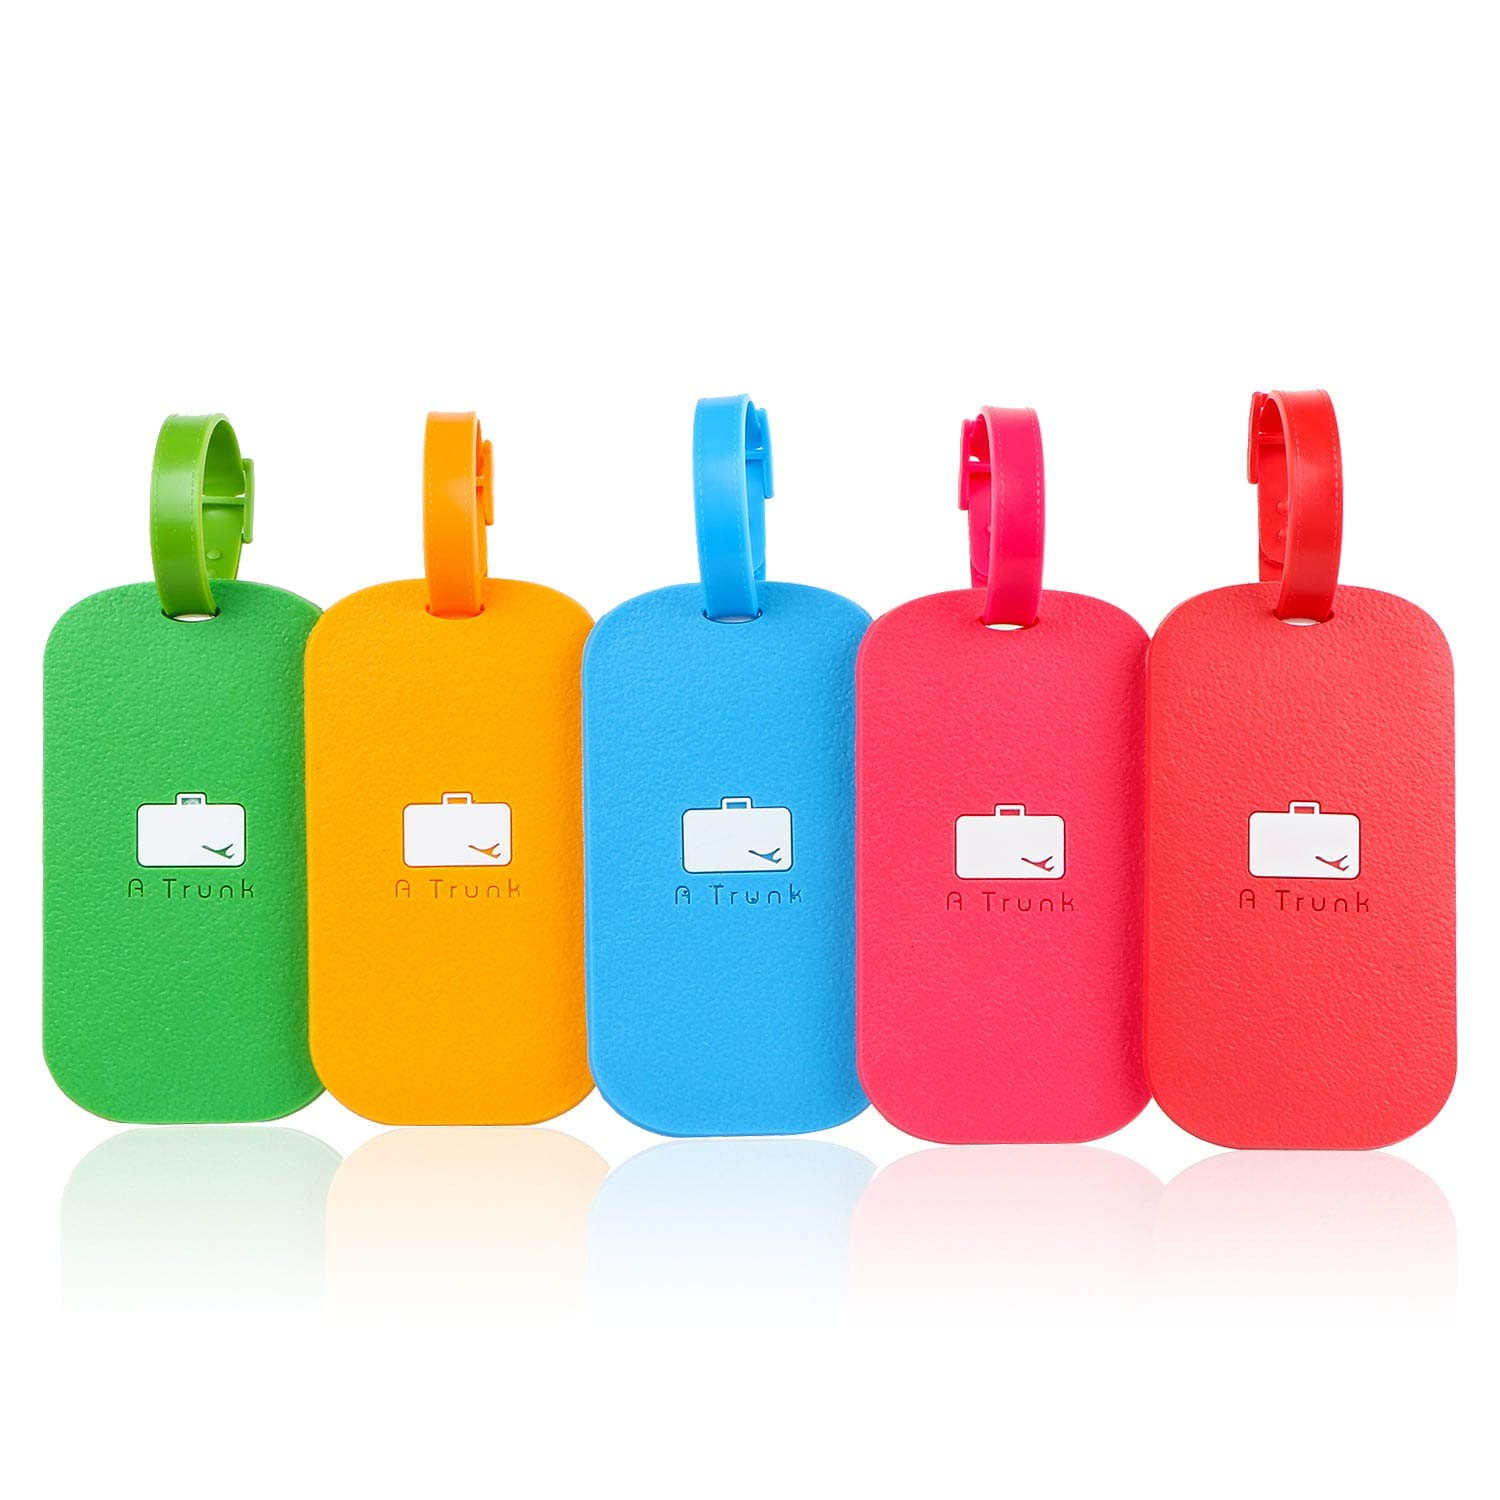 Luggage Tags-Travel Silicon Tag for Baggage Suitcase, Bag, Backpack, 5 Pack